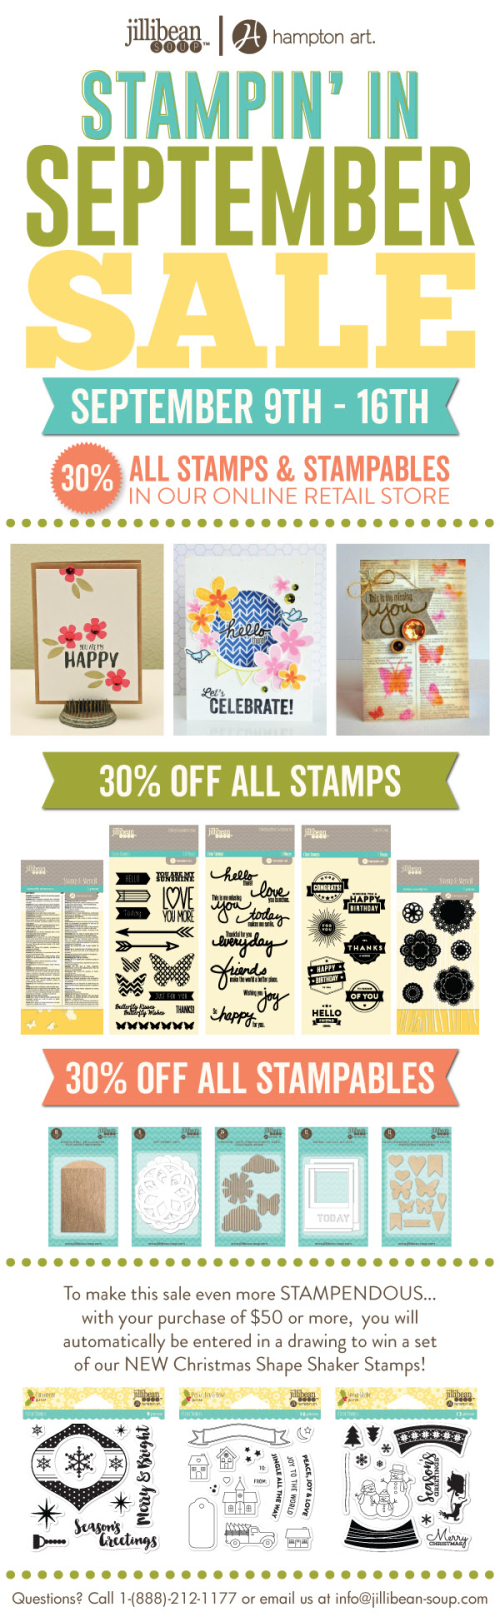 StampSale